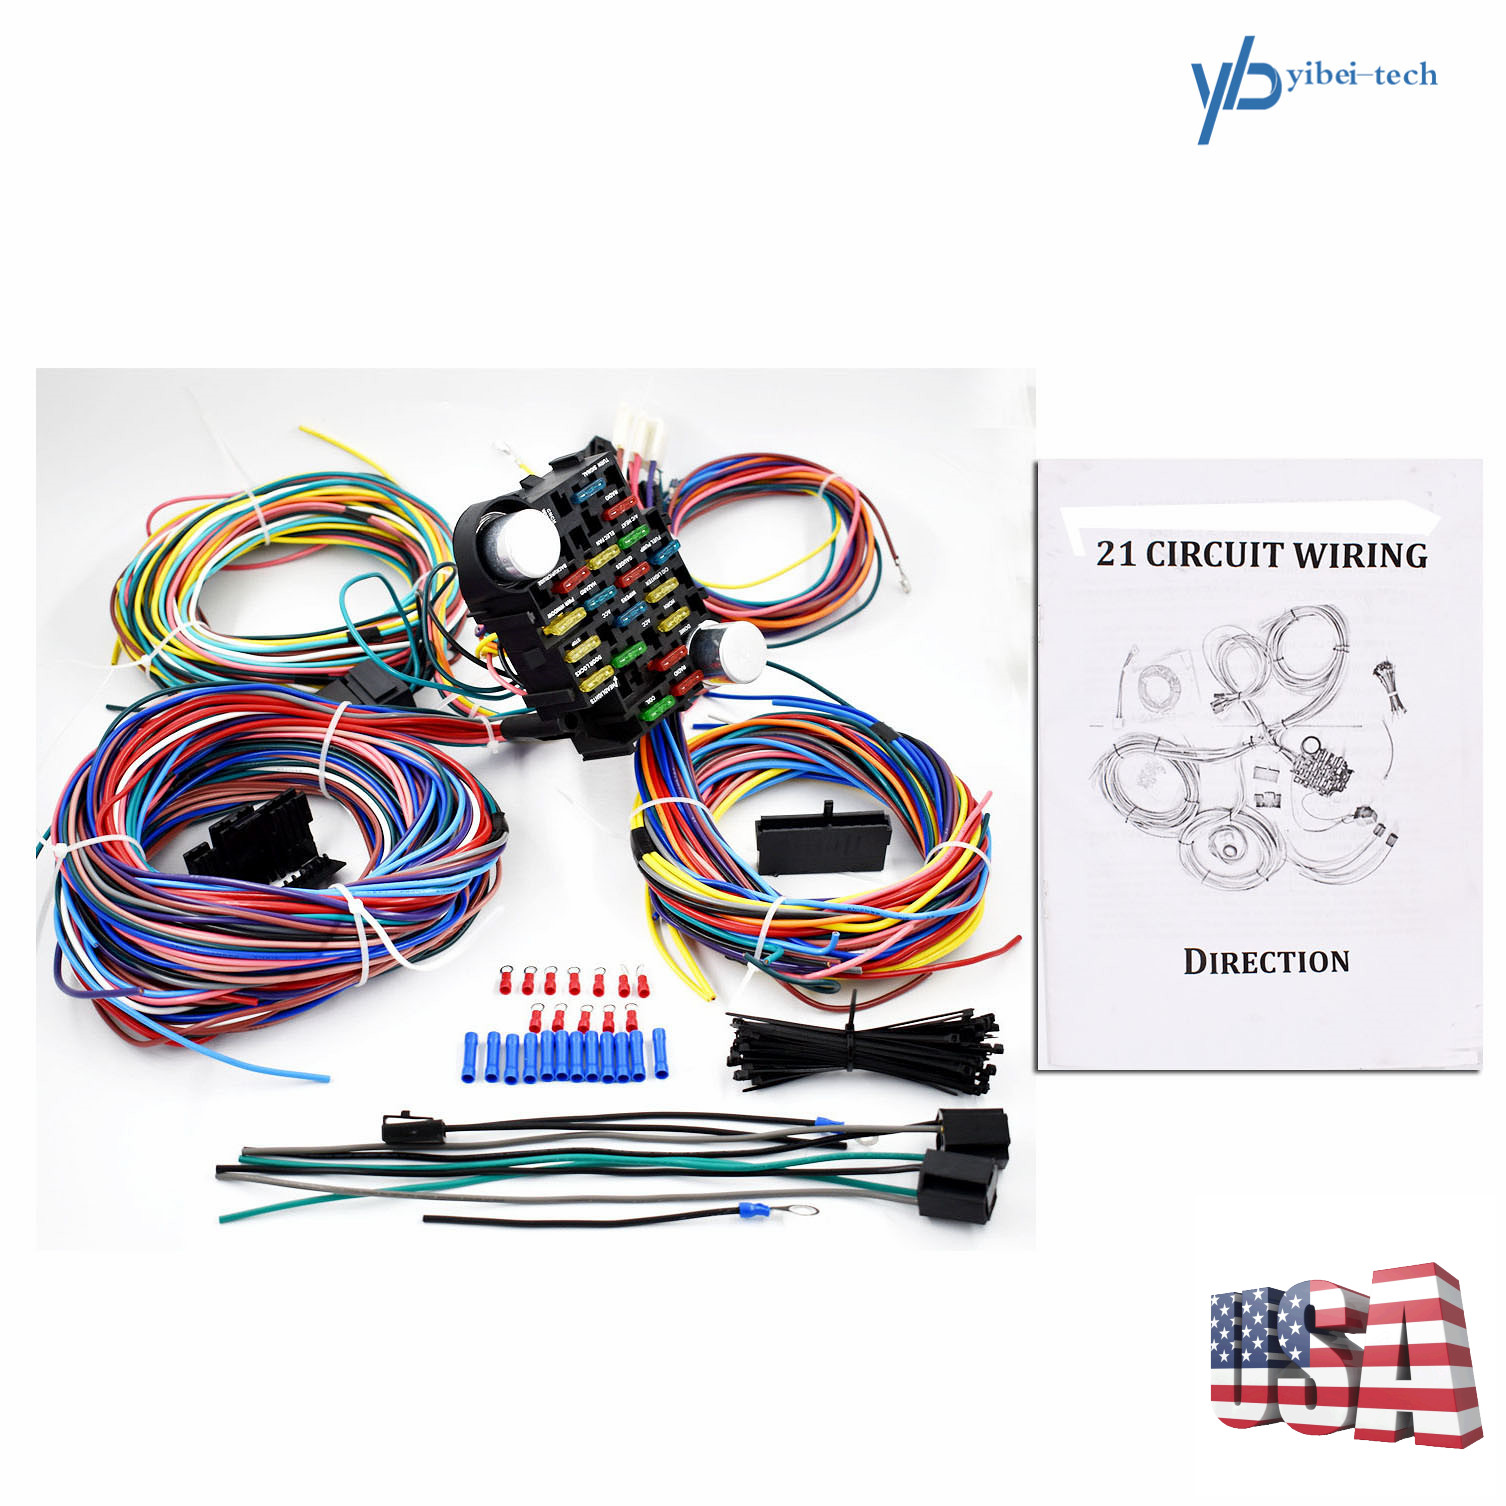 21 Circuit Wiring Harness For Chevy Mopar Ford hotrods Universal X-long  wires US